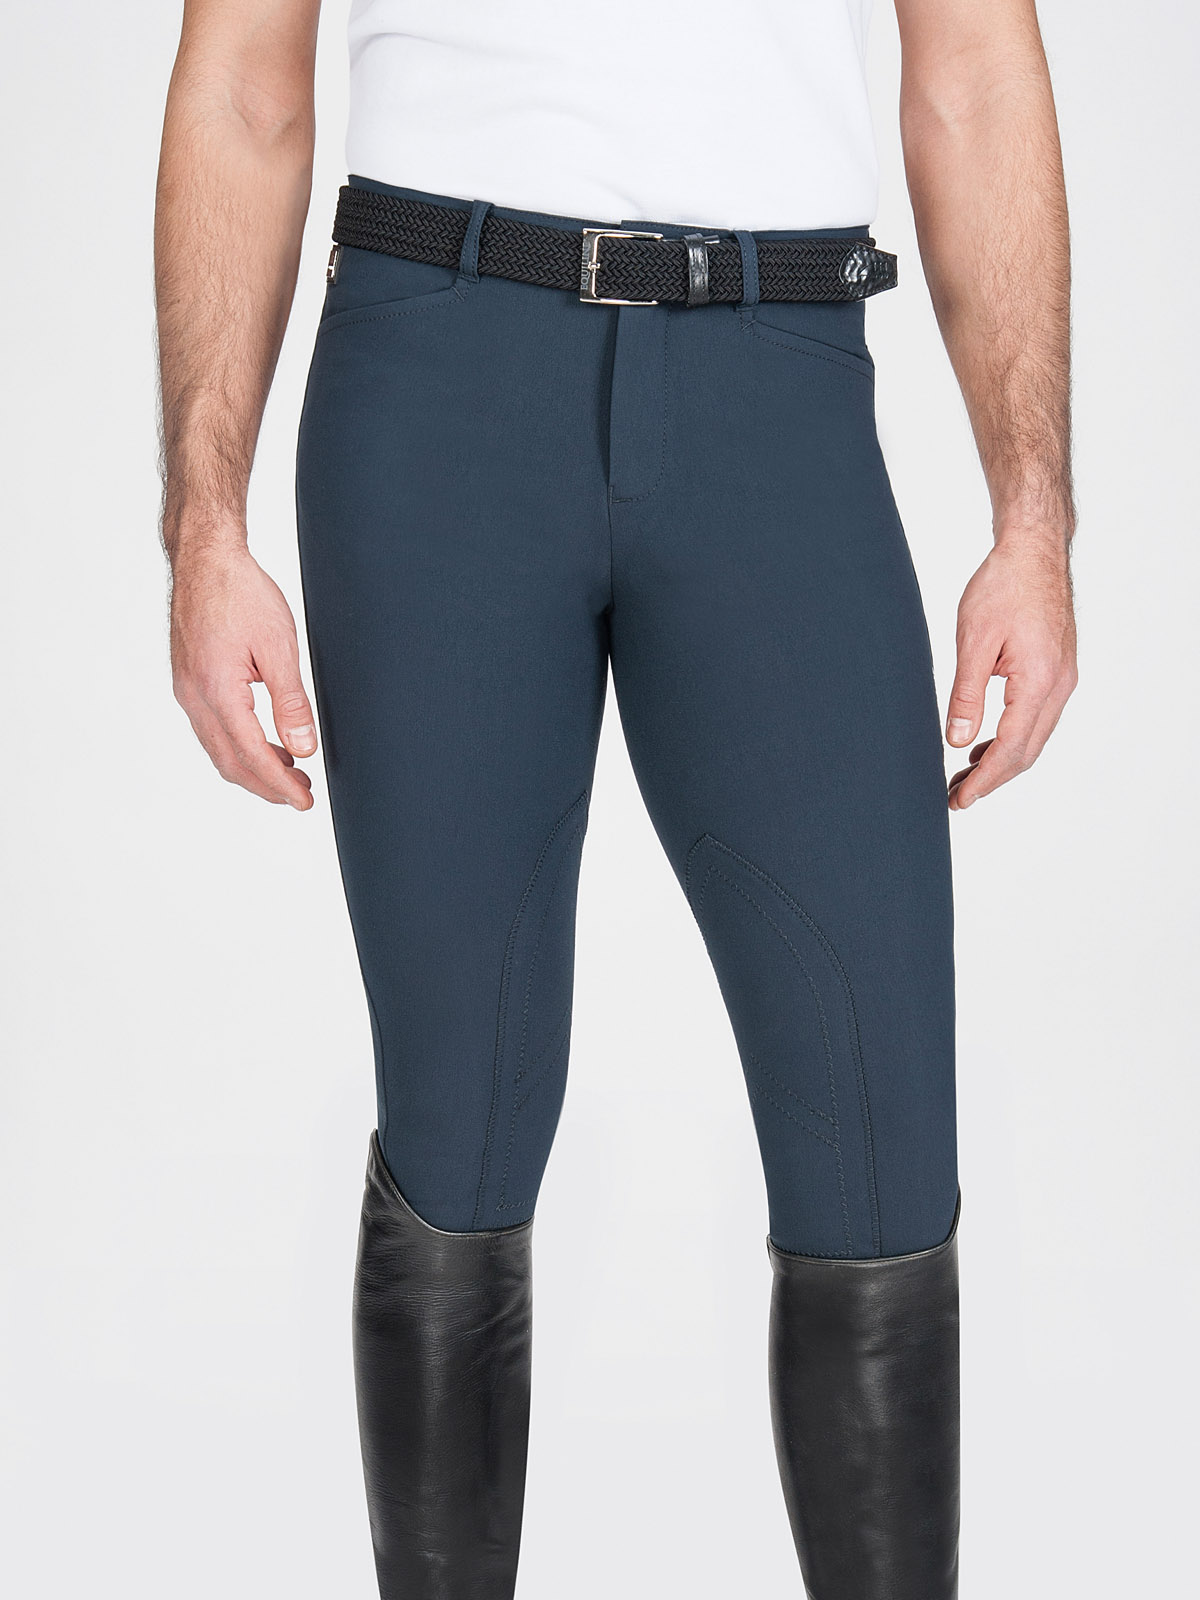 Grafton men's knee patch riding breeches in blue